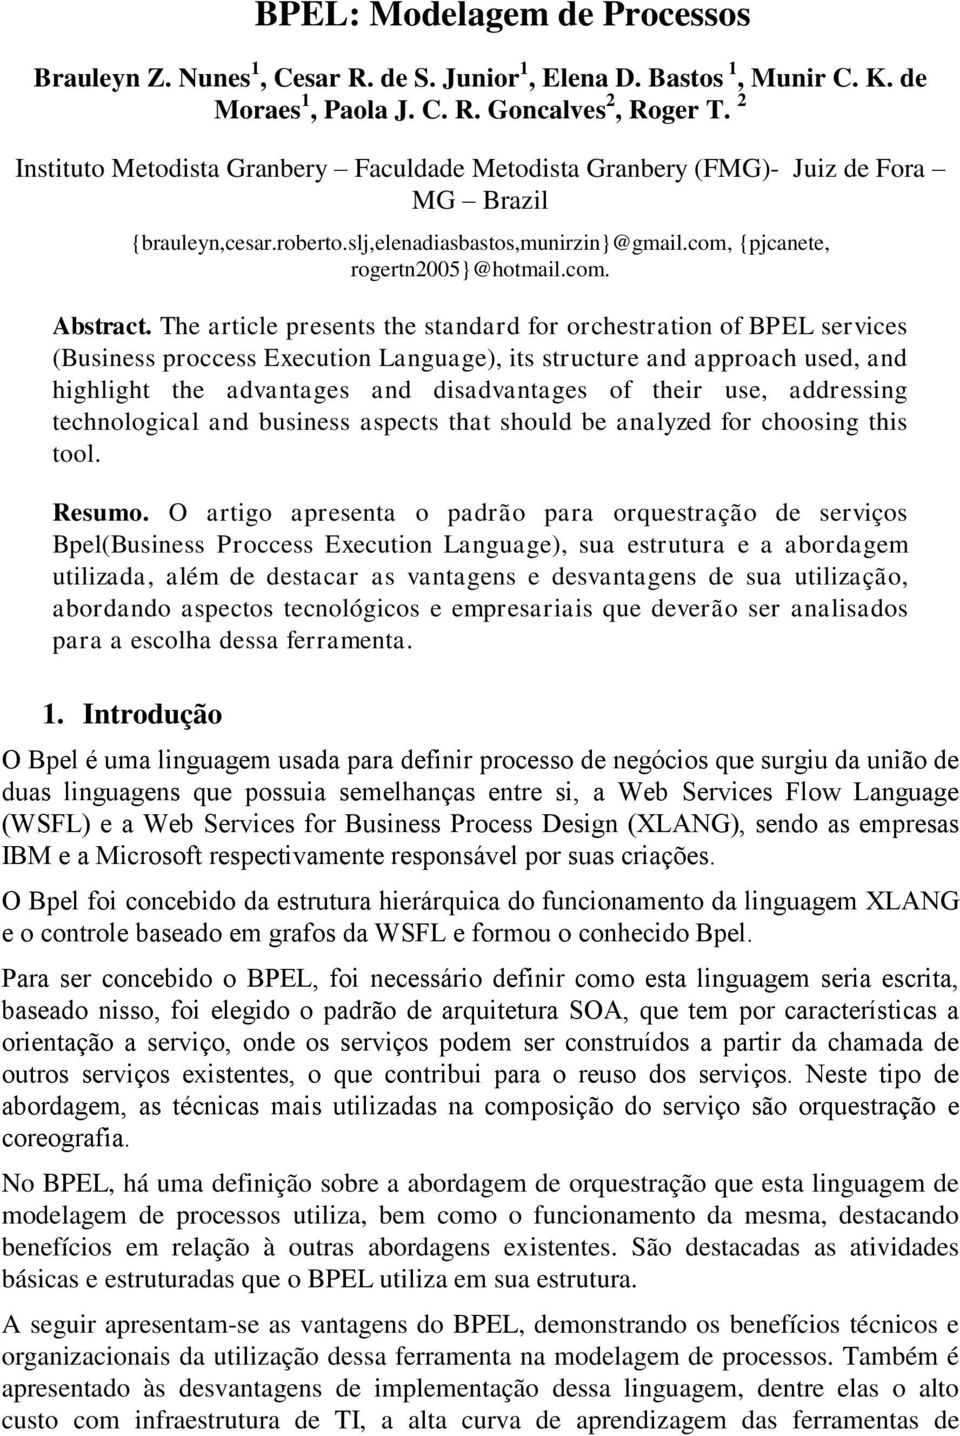 The article presents the standard for orchestration of BPEL services (Business proccess Execution Language), its structure and approach used, and highlight the advantages and disadvantages of their